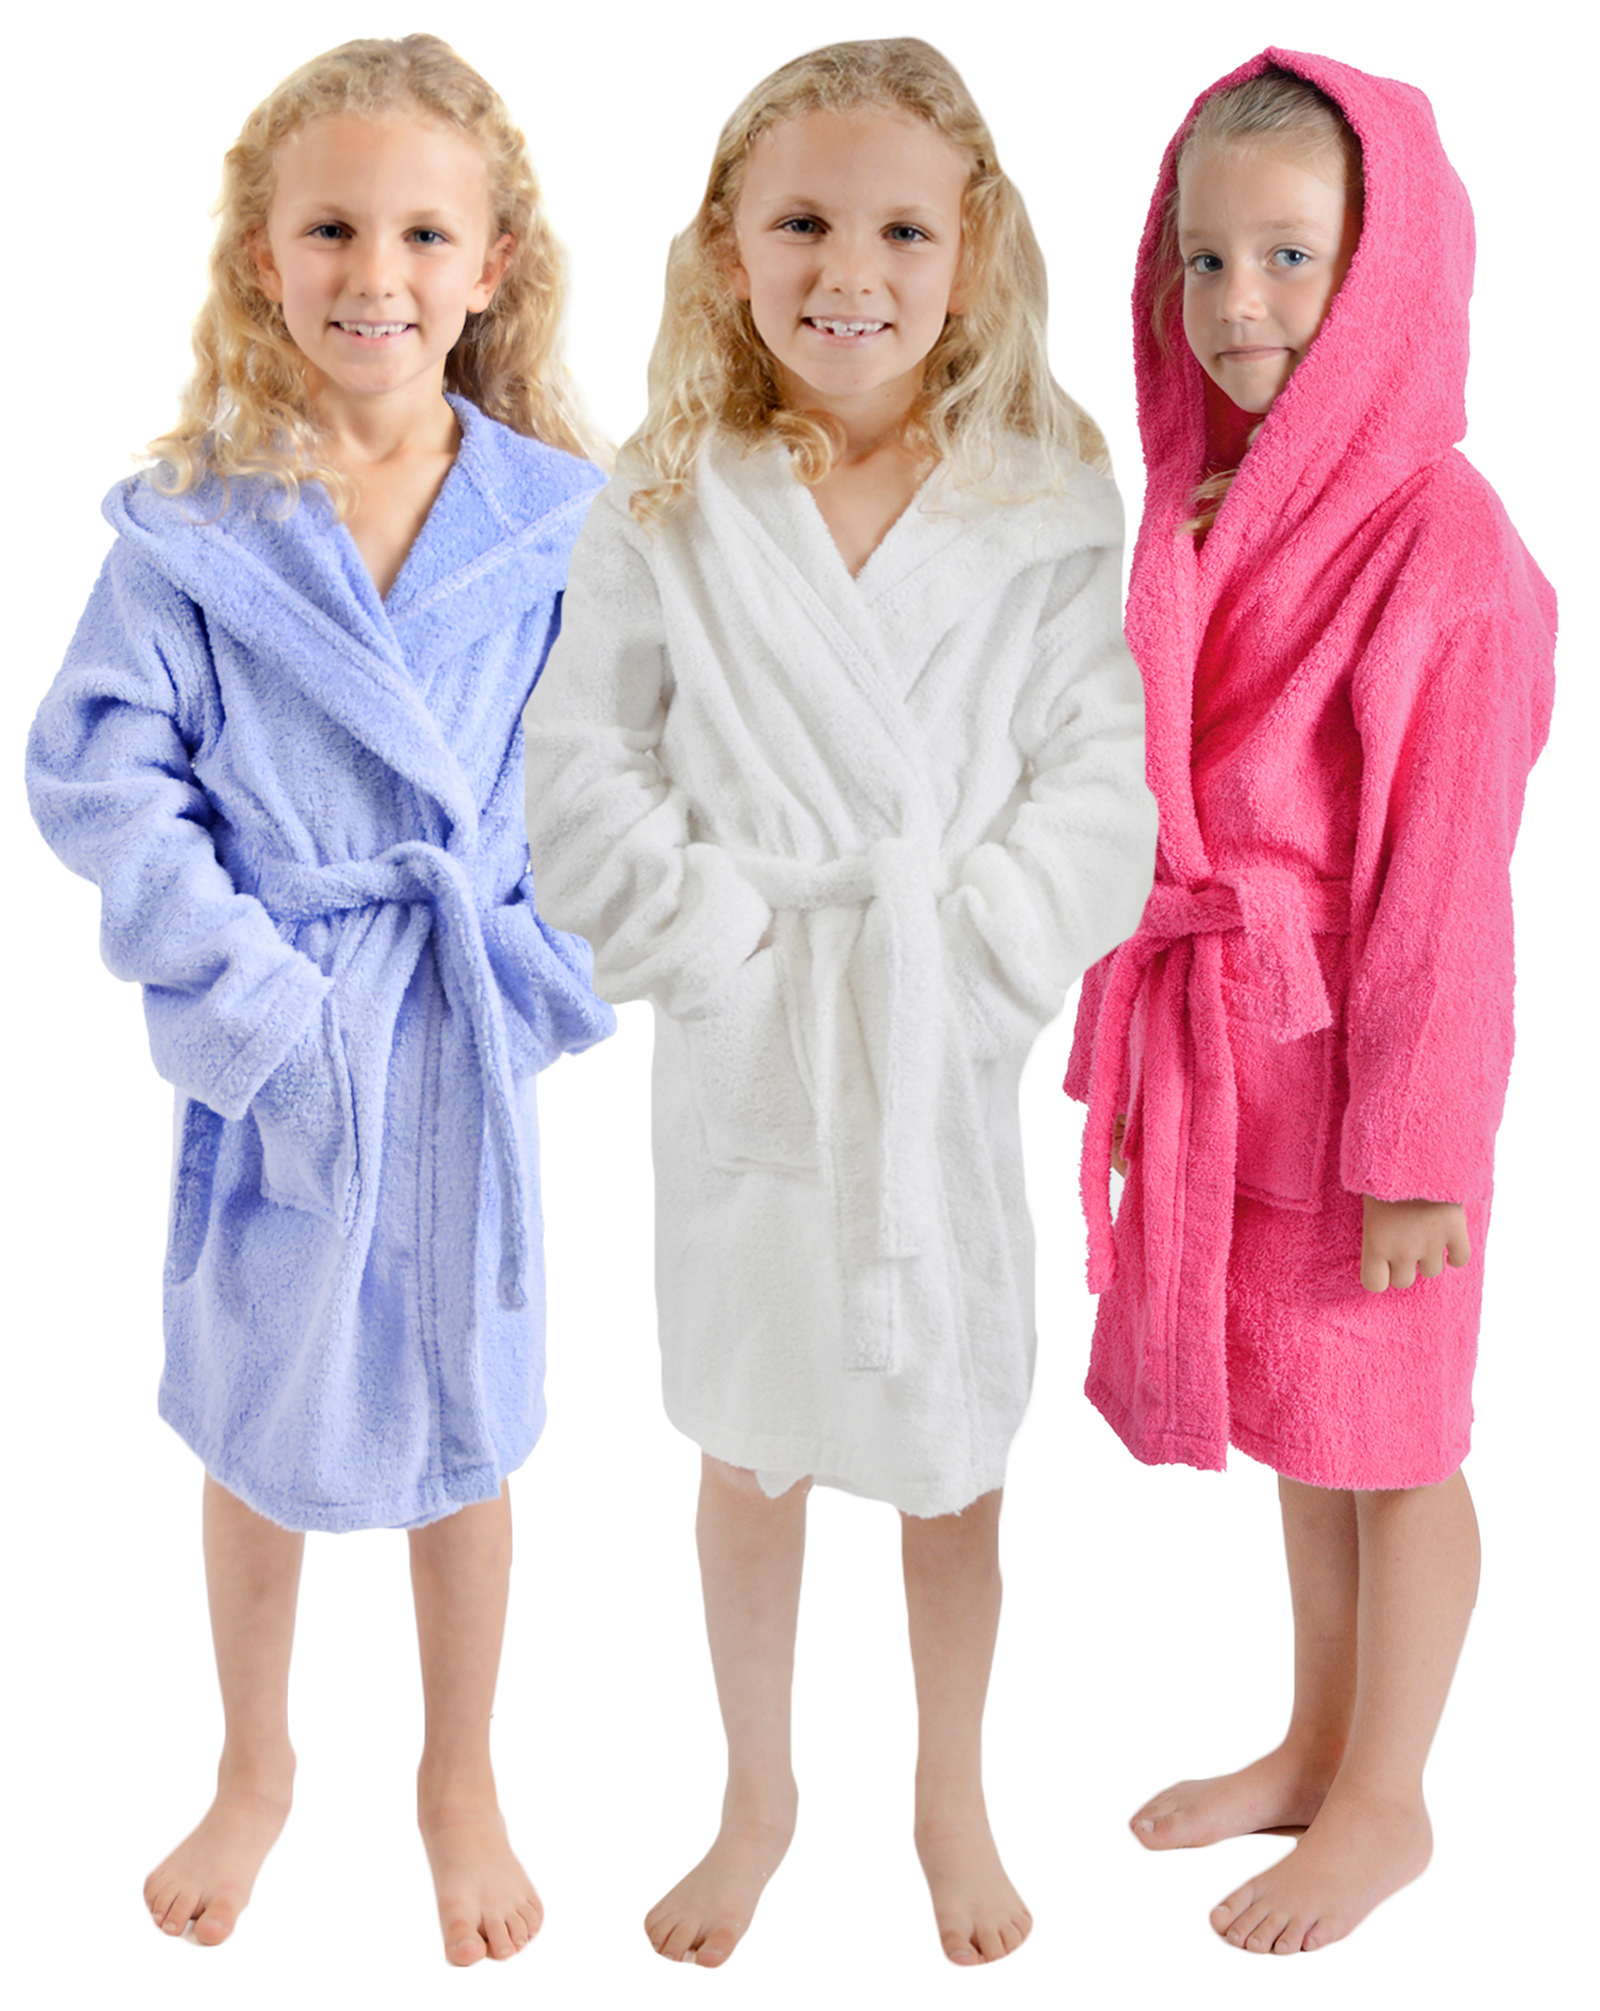 ab788e60ec Girls 100% Cotton Towelling Dressing Gown Hooded Bath Robe Xmas Gift Kids  Size